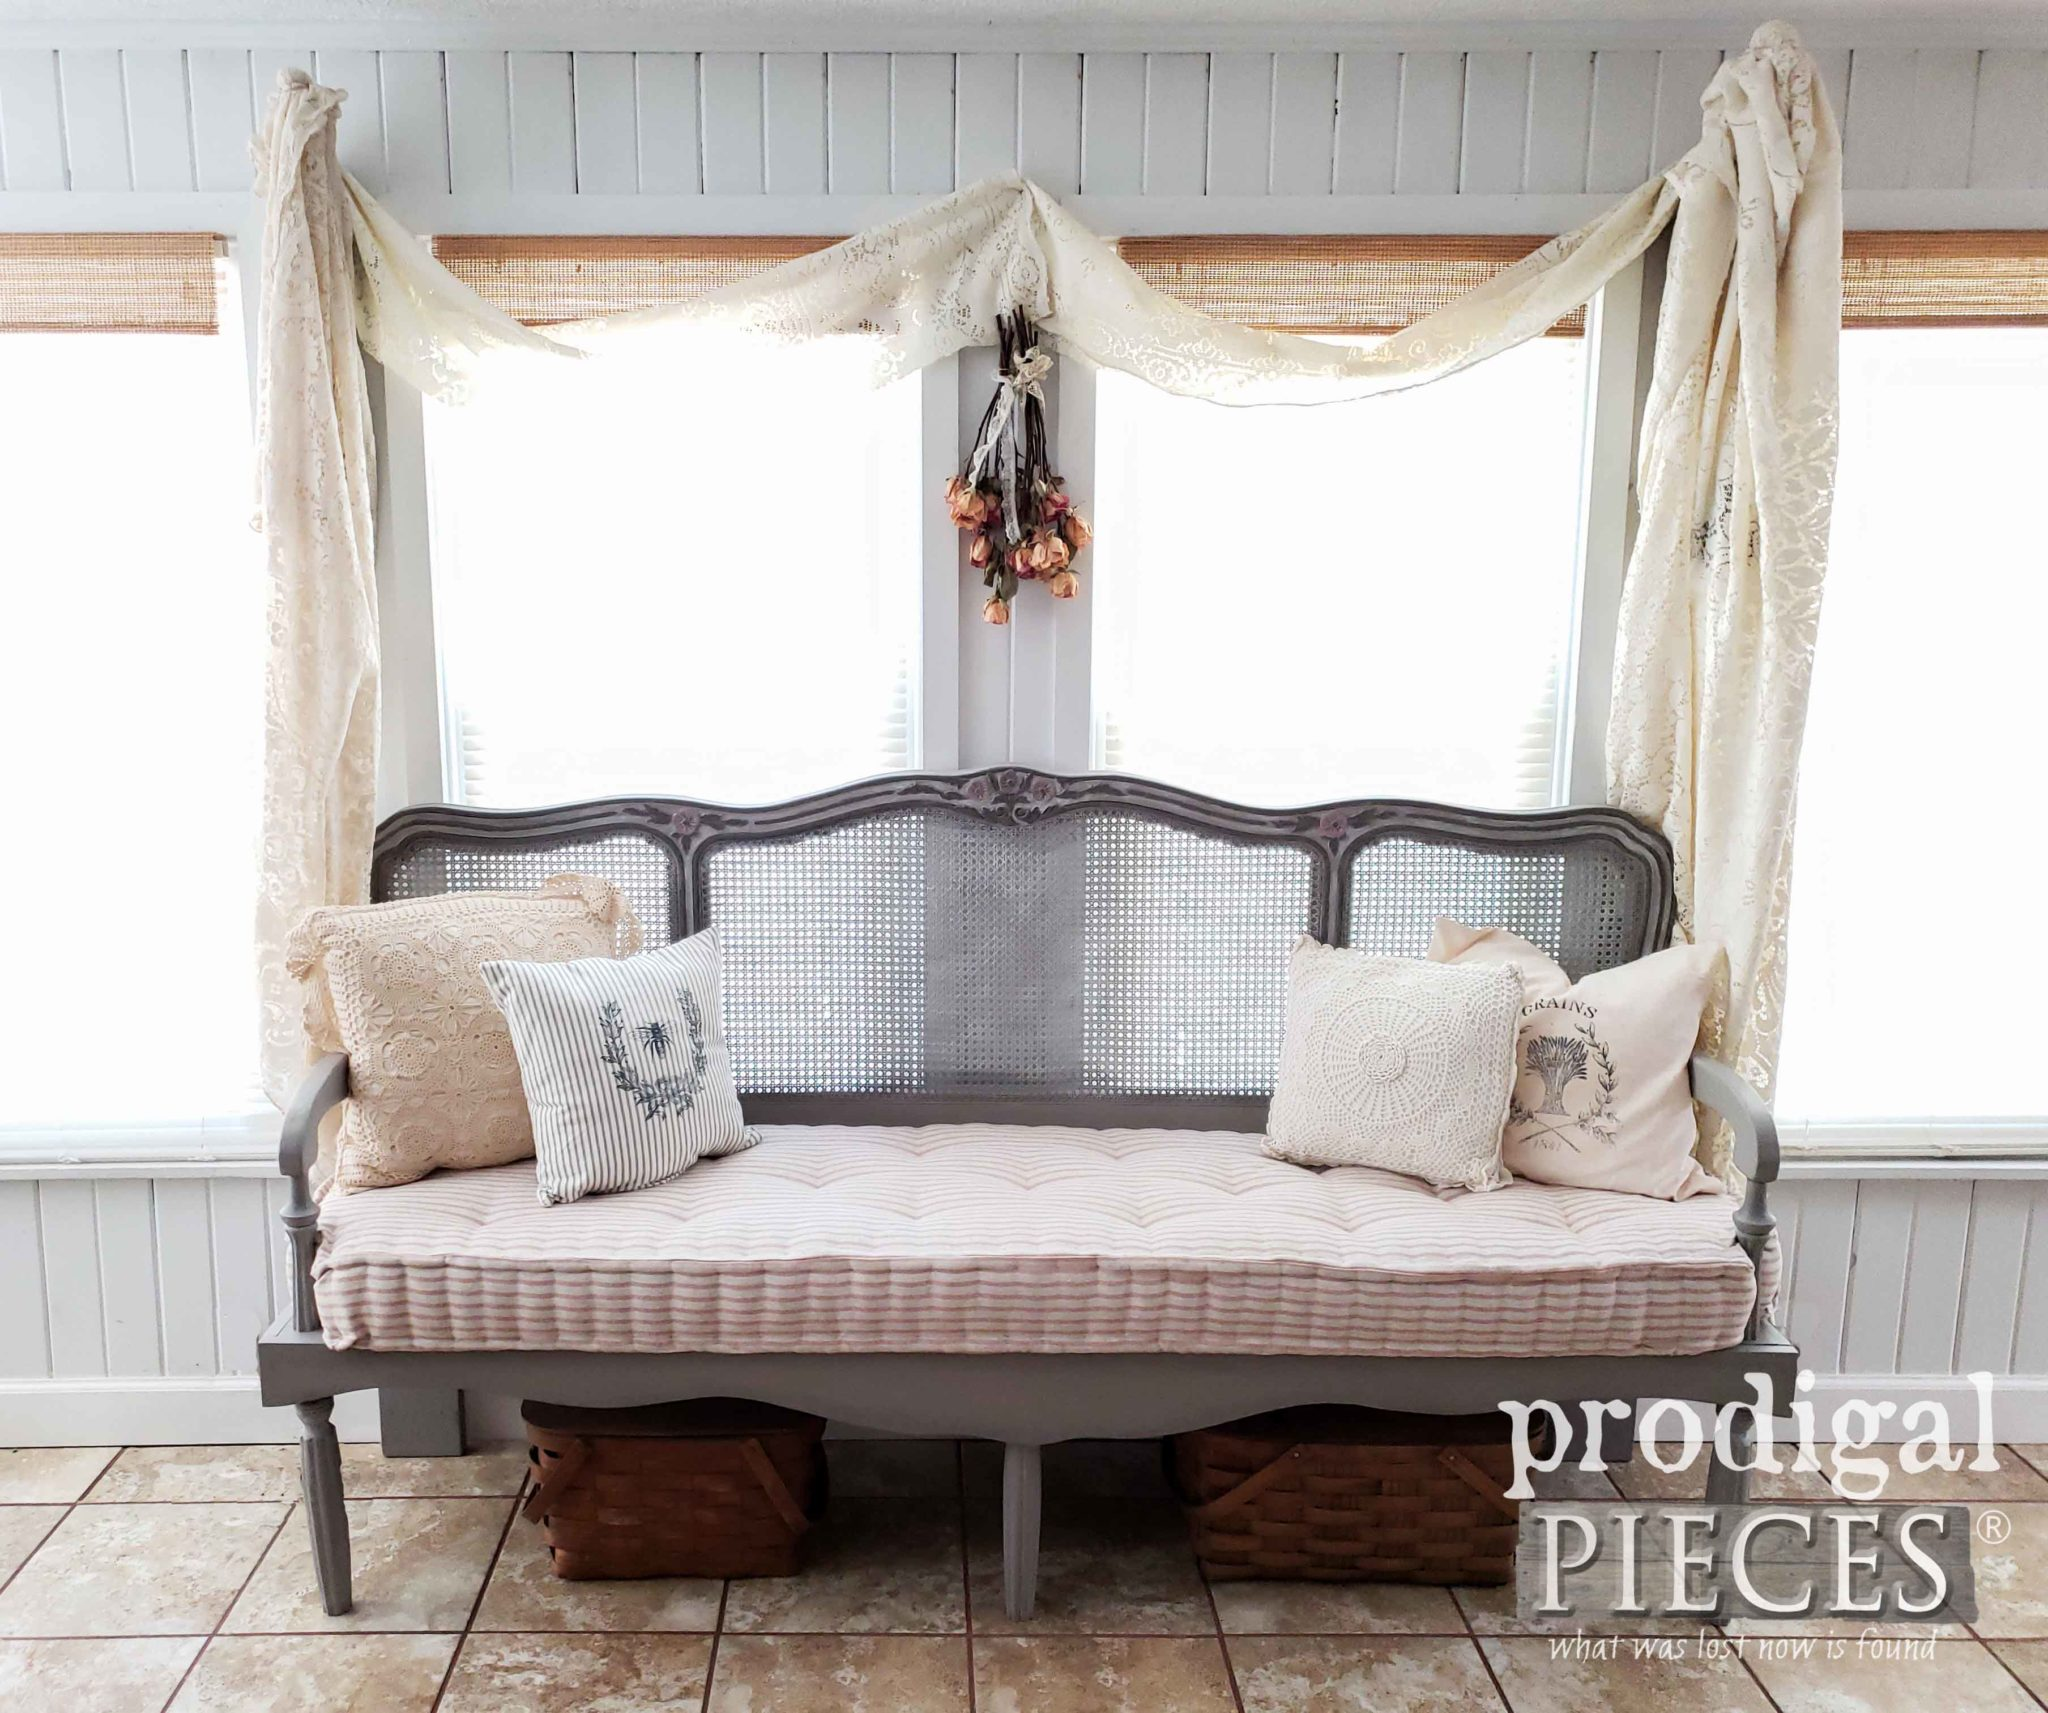 Handmade French Provincial Headboard Bench Built with Custom French Mattress by Larissa of Prodigal Pieces | prodigalpieces.com